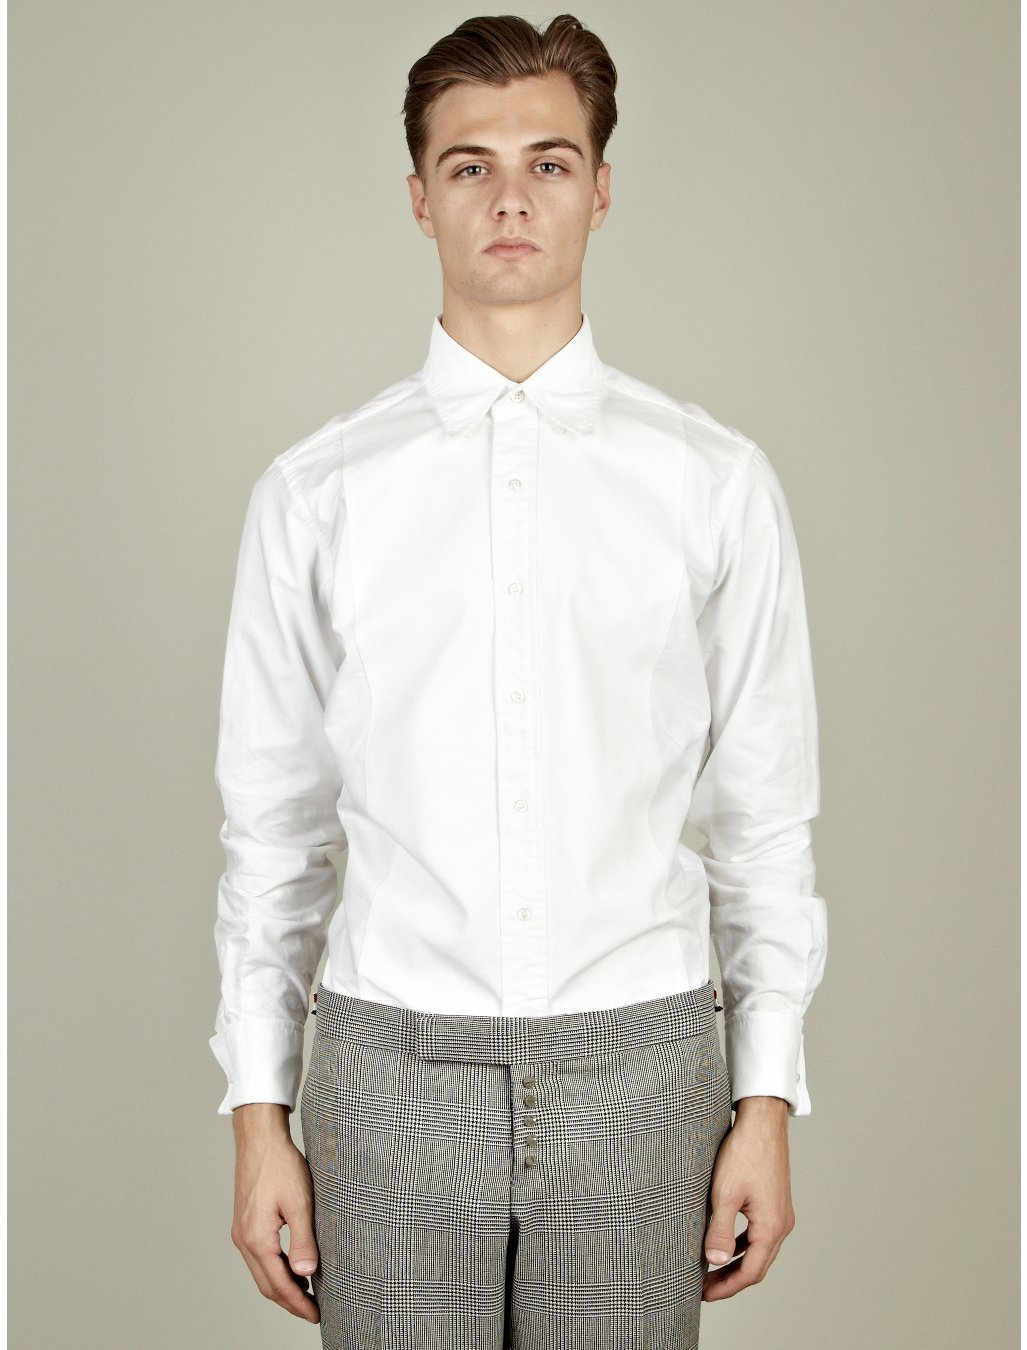 Thom browne classic button down tuxedo shirt in white for for Preppy button down shirts